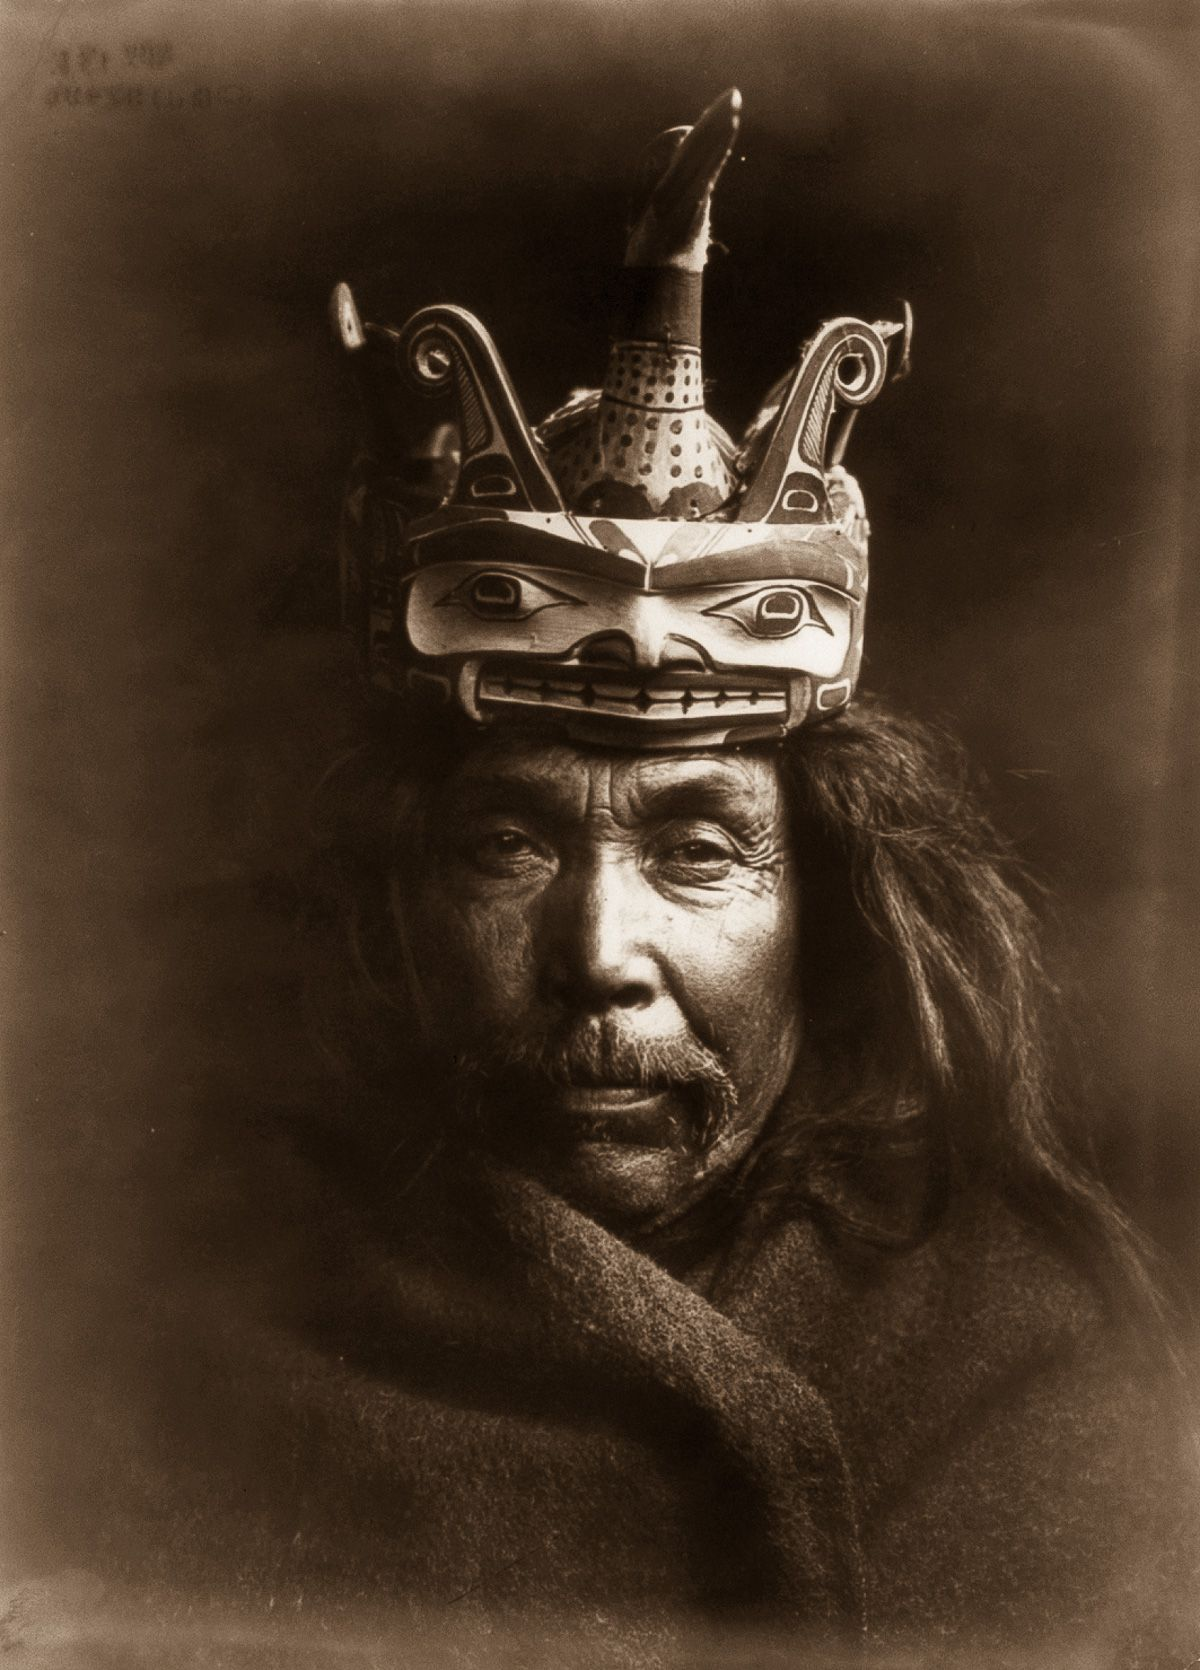 A Kwakiutl man wearing a mask depicting a man transforming into a loon,  1914.  ©EDWARD S. CURTIS/LIBRARY OF CONGRESS